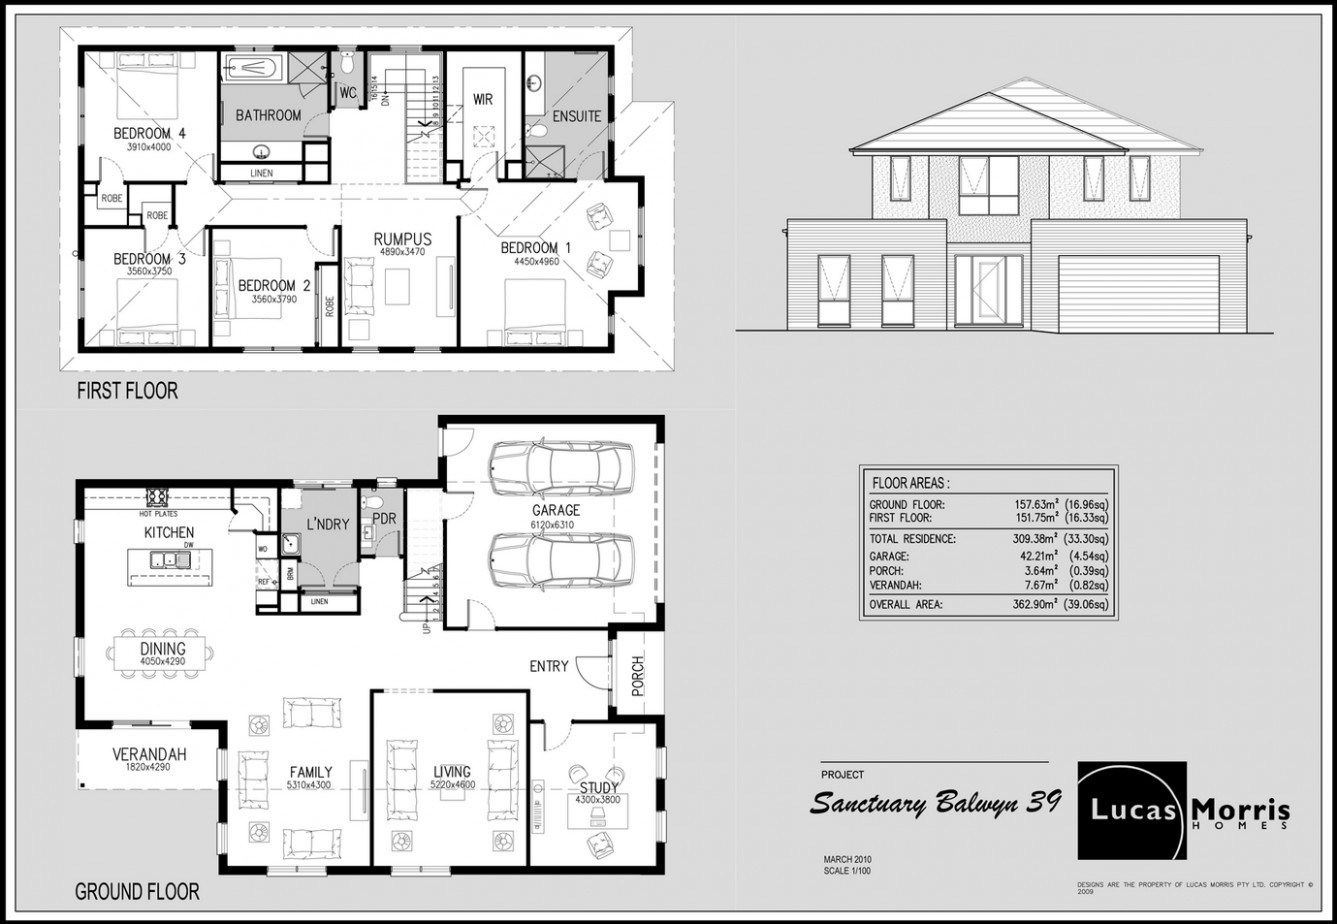 Free House Floor Plans Designs Is So Famous But Why Free House Floor Plans Designs Https Ift T Floor Plan Design Home Design Floor Plans Custom Home Plans